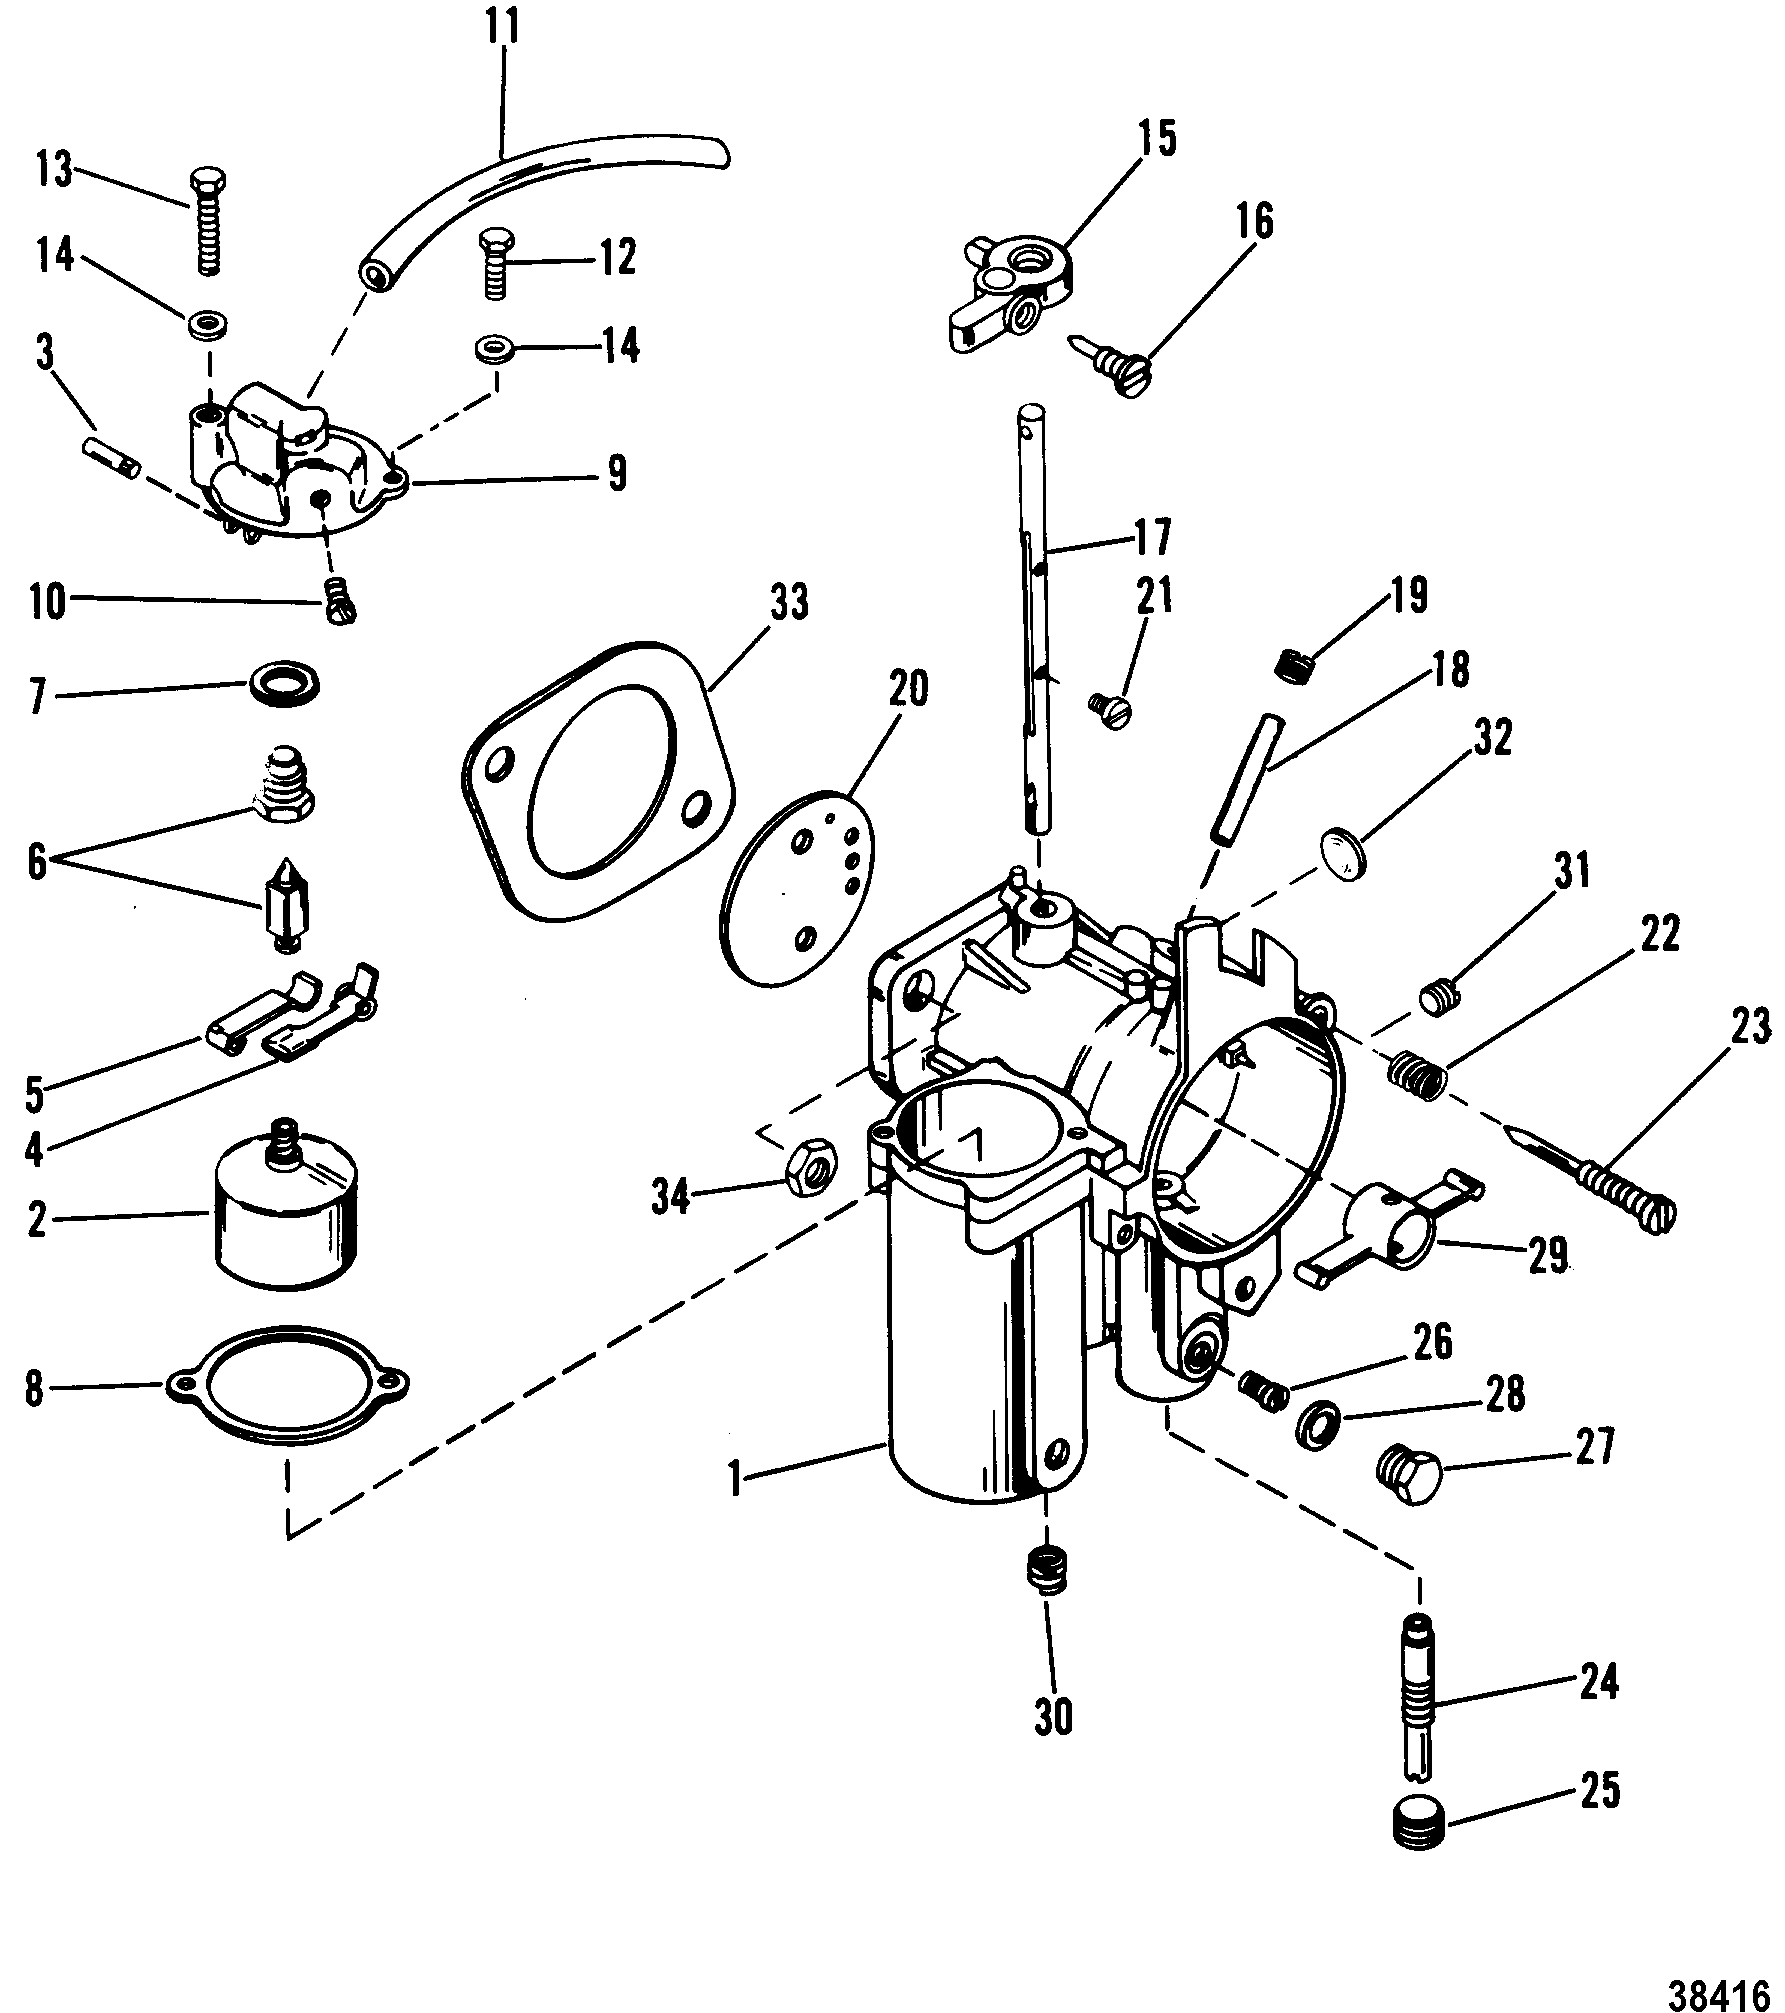 38416 carburetor for mariner mercury 90 115 h p inline mercury outboard 115 hp diagrams at bayanpartner.co